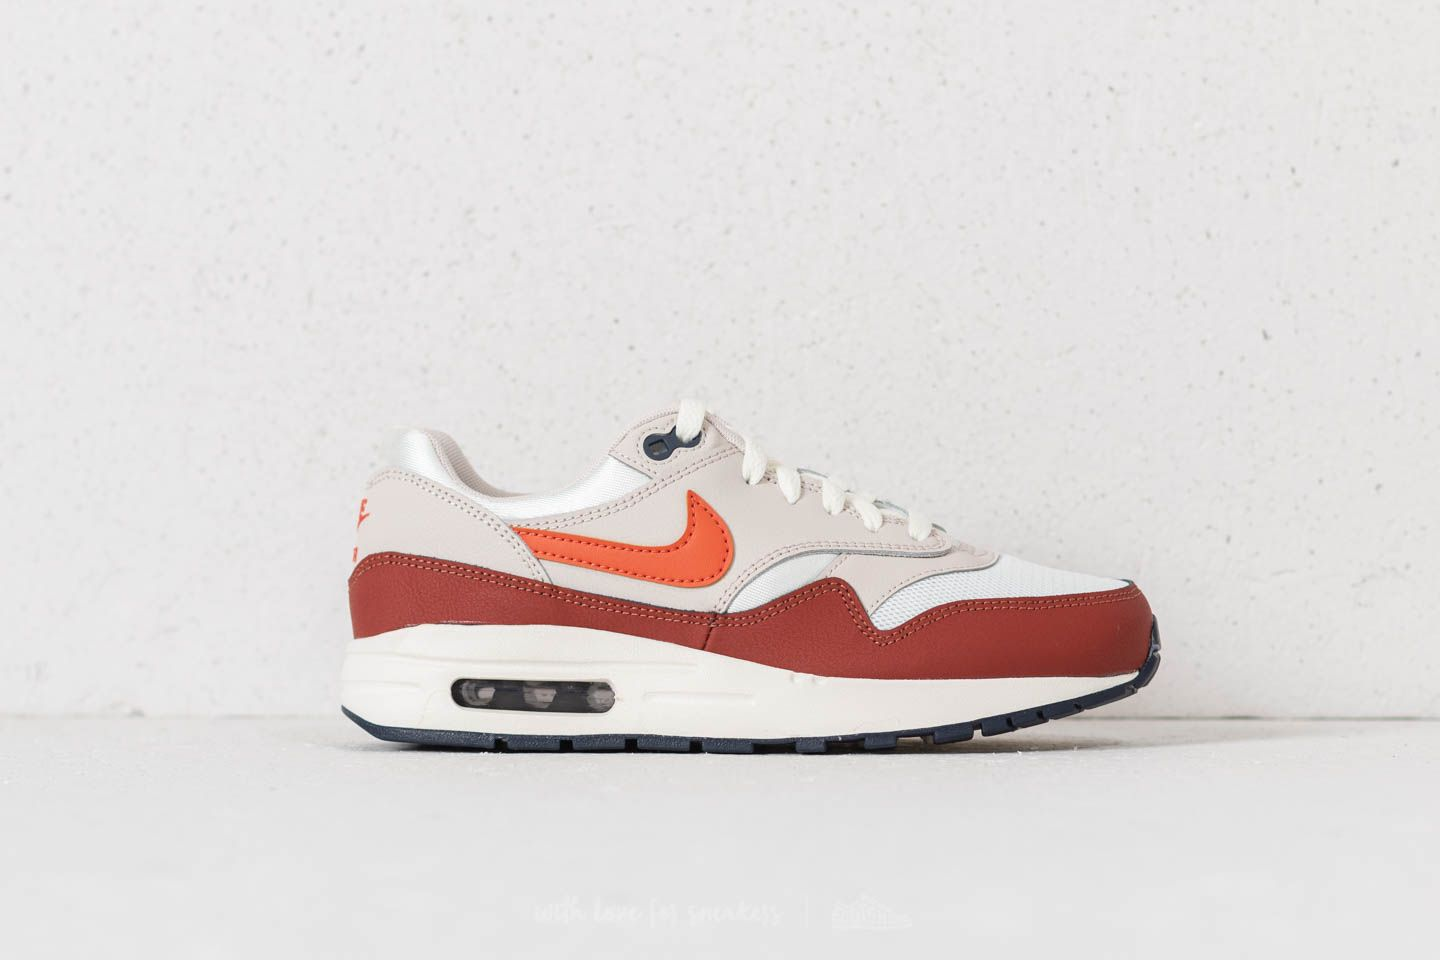 Nike Air Max 1 (GS) Sail/ Vintage Coral/ Mars Stone at a